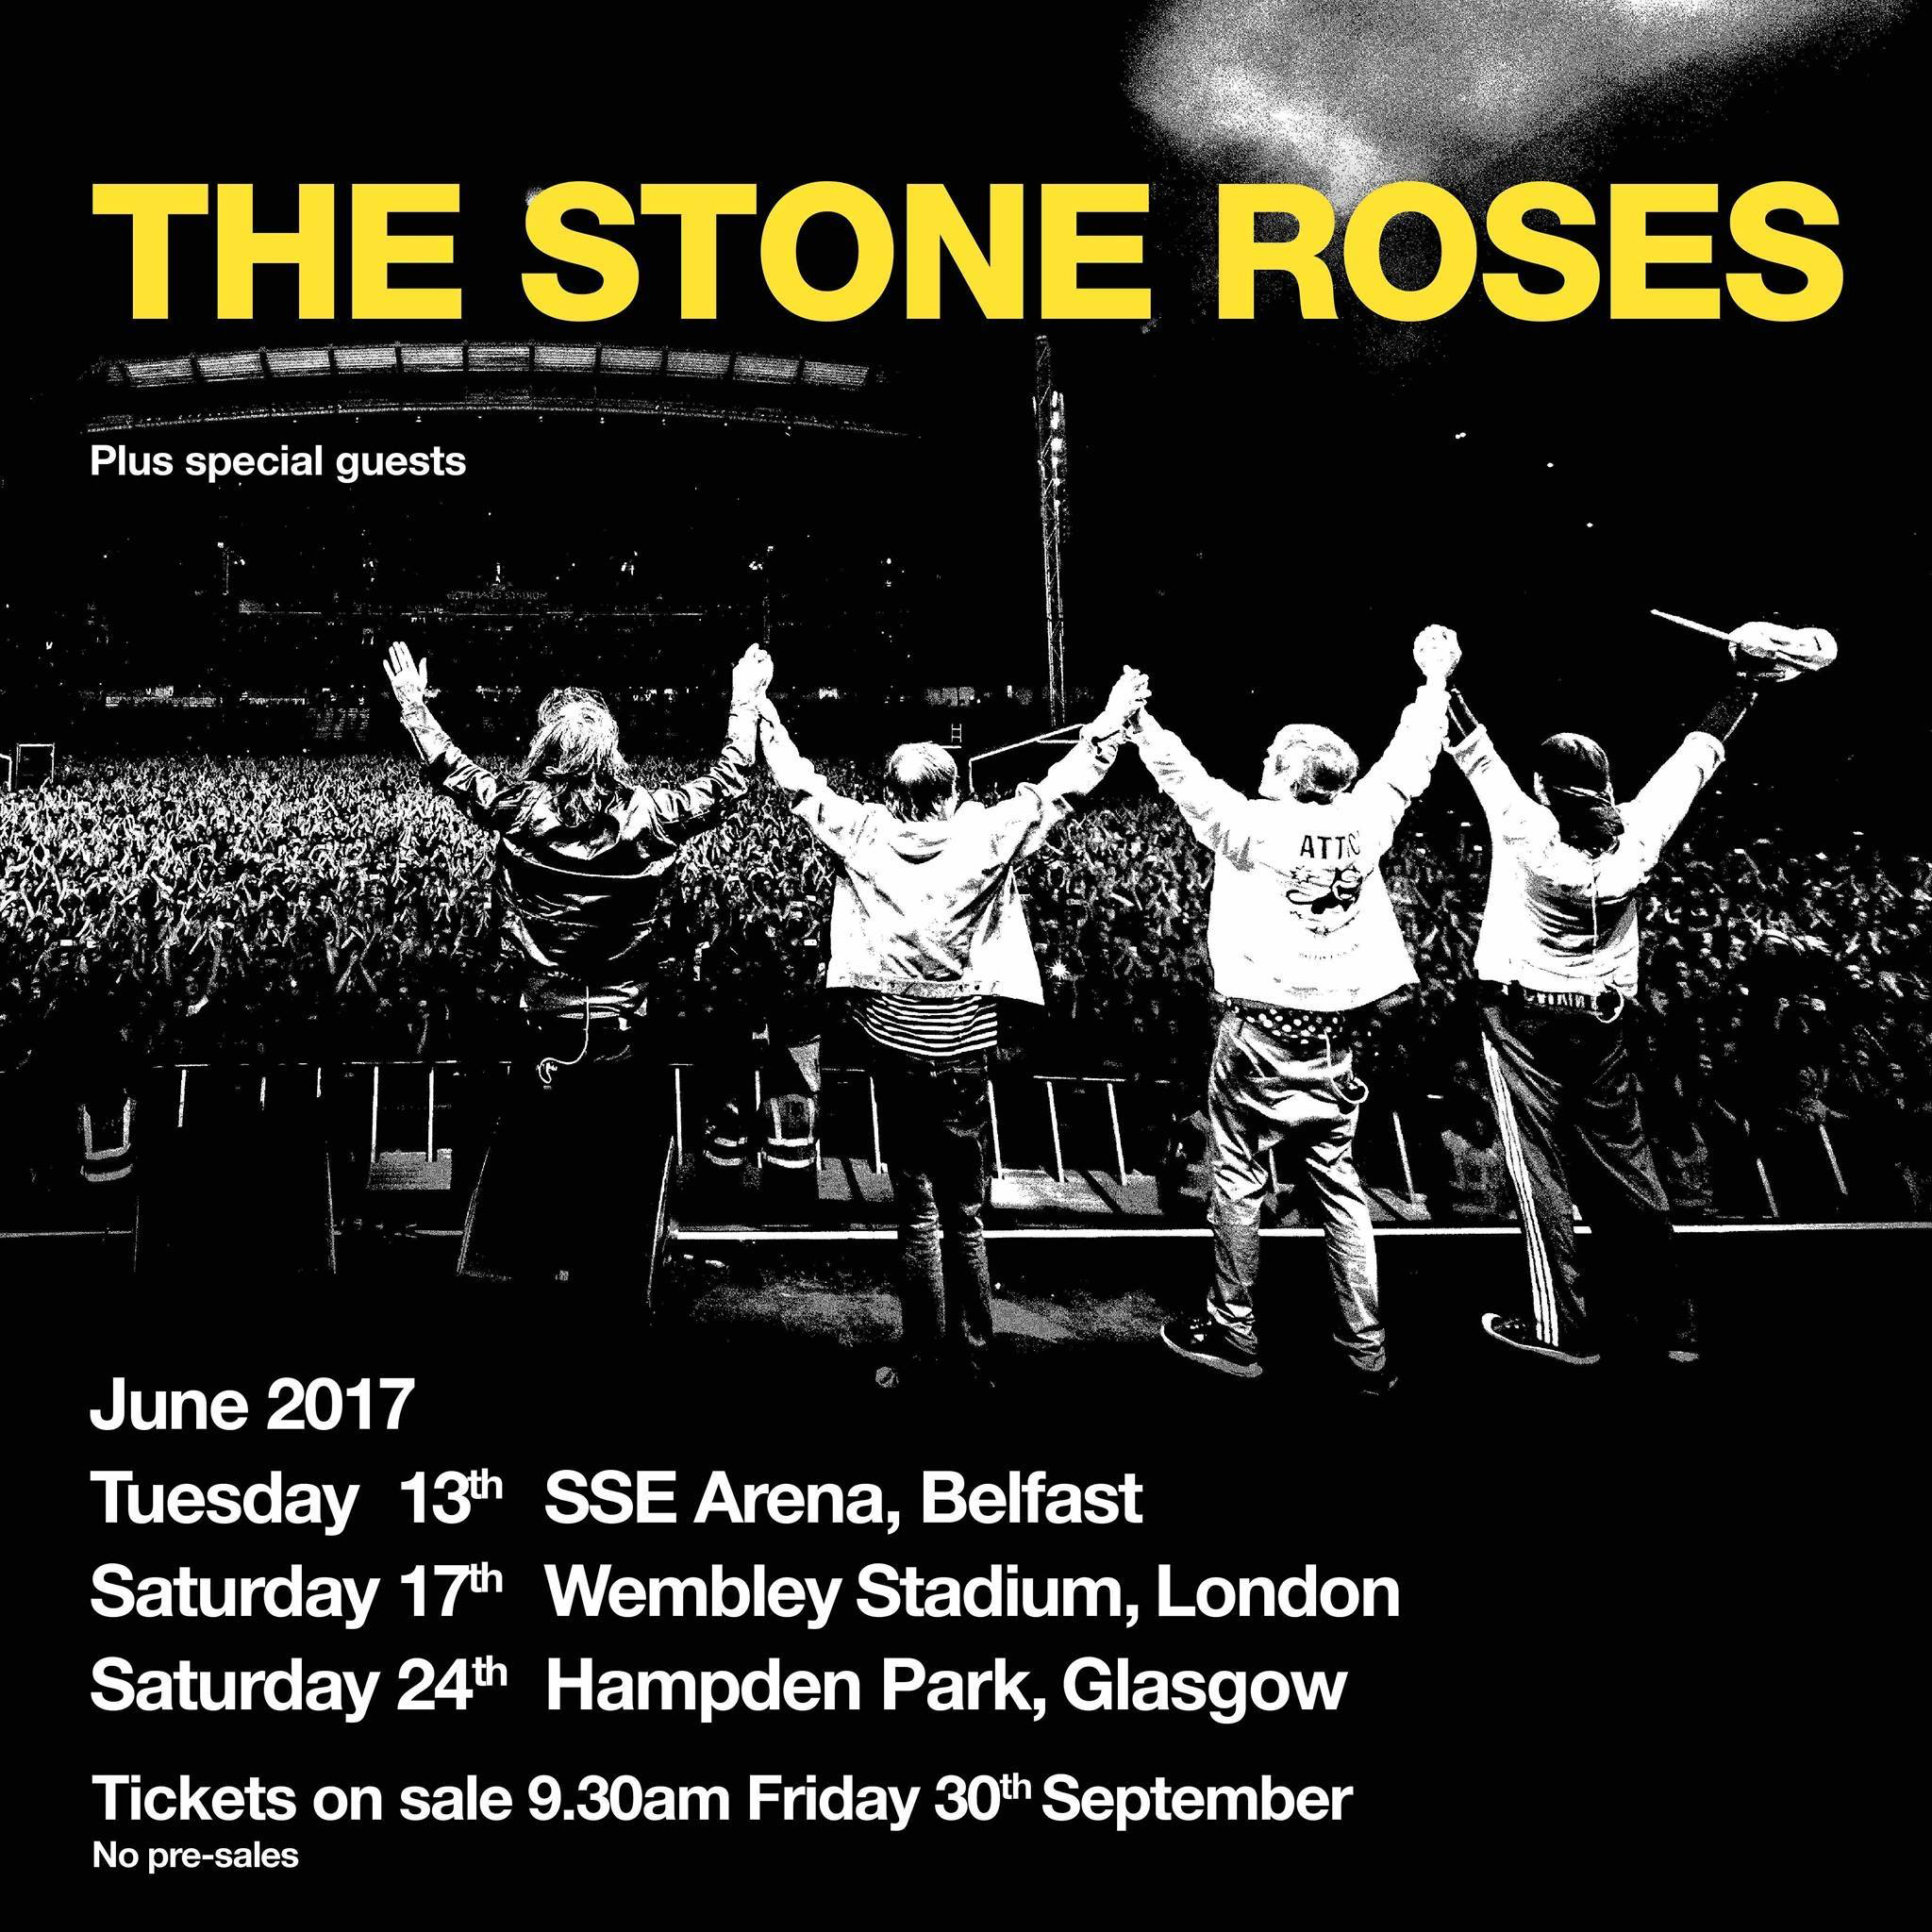 The Stone Roses June 2017 Dates.jpg